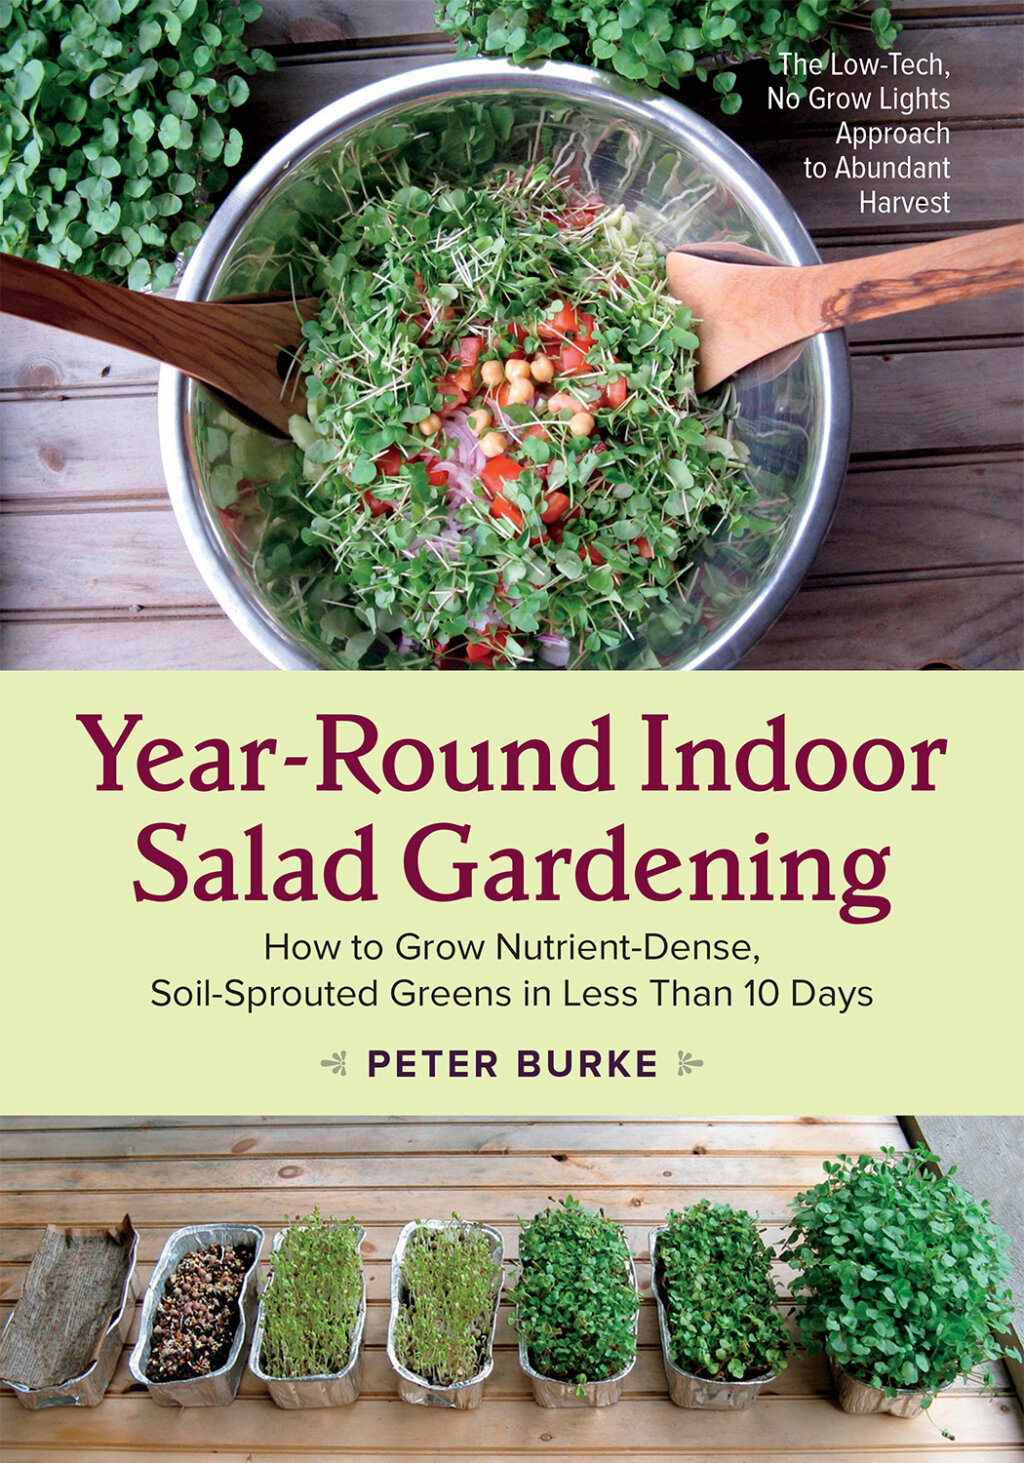 The Year-Round Indoor Salad Gardening cover